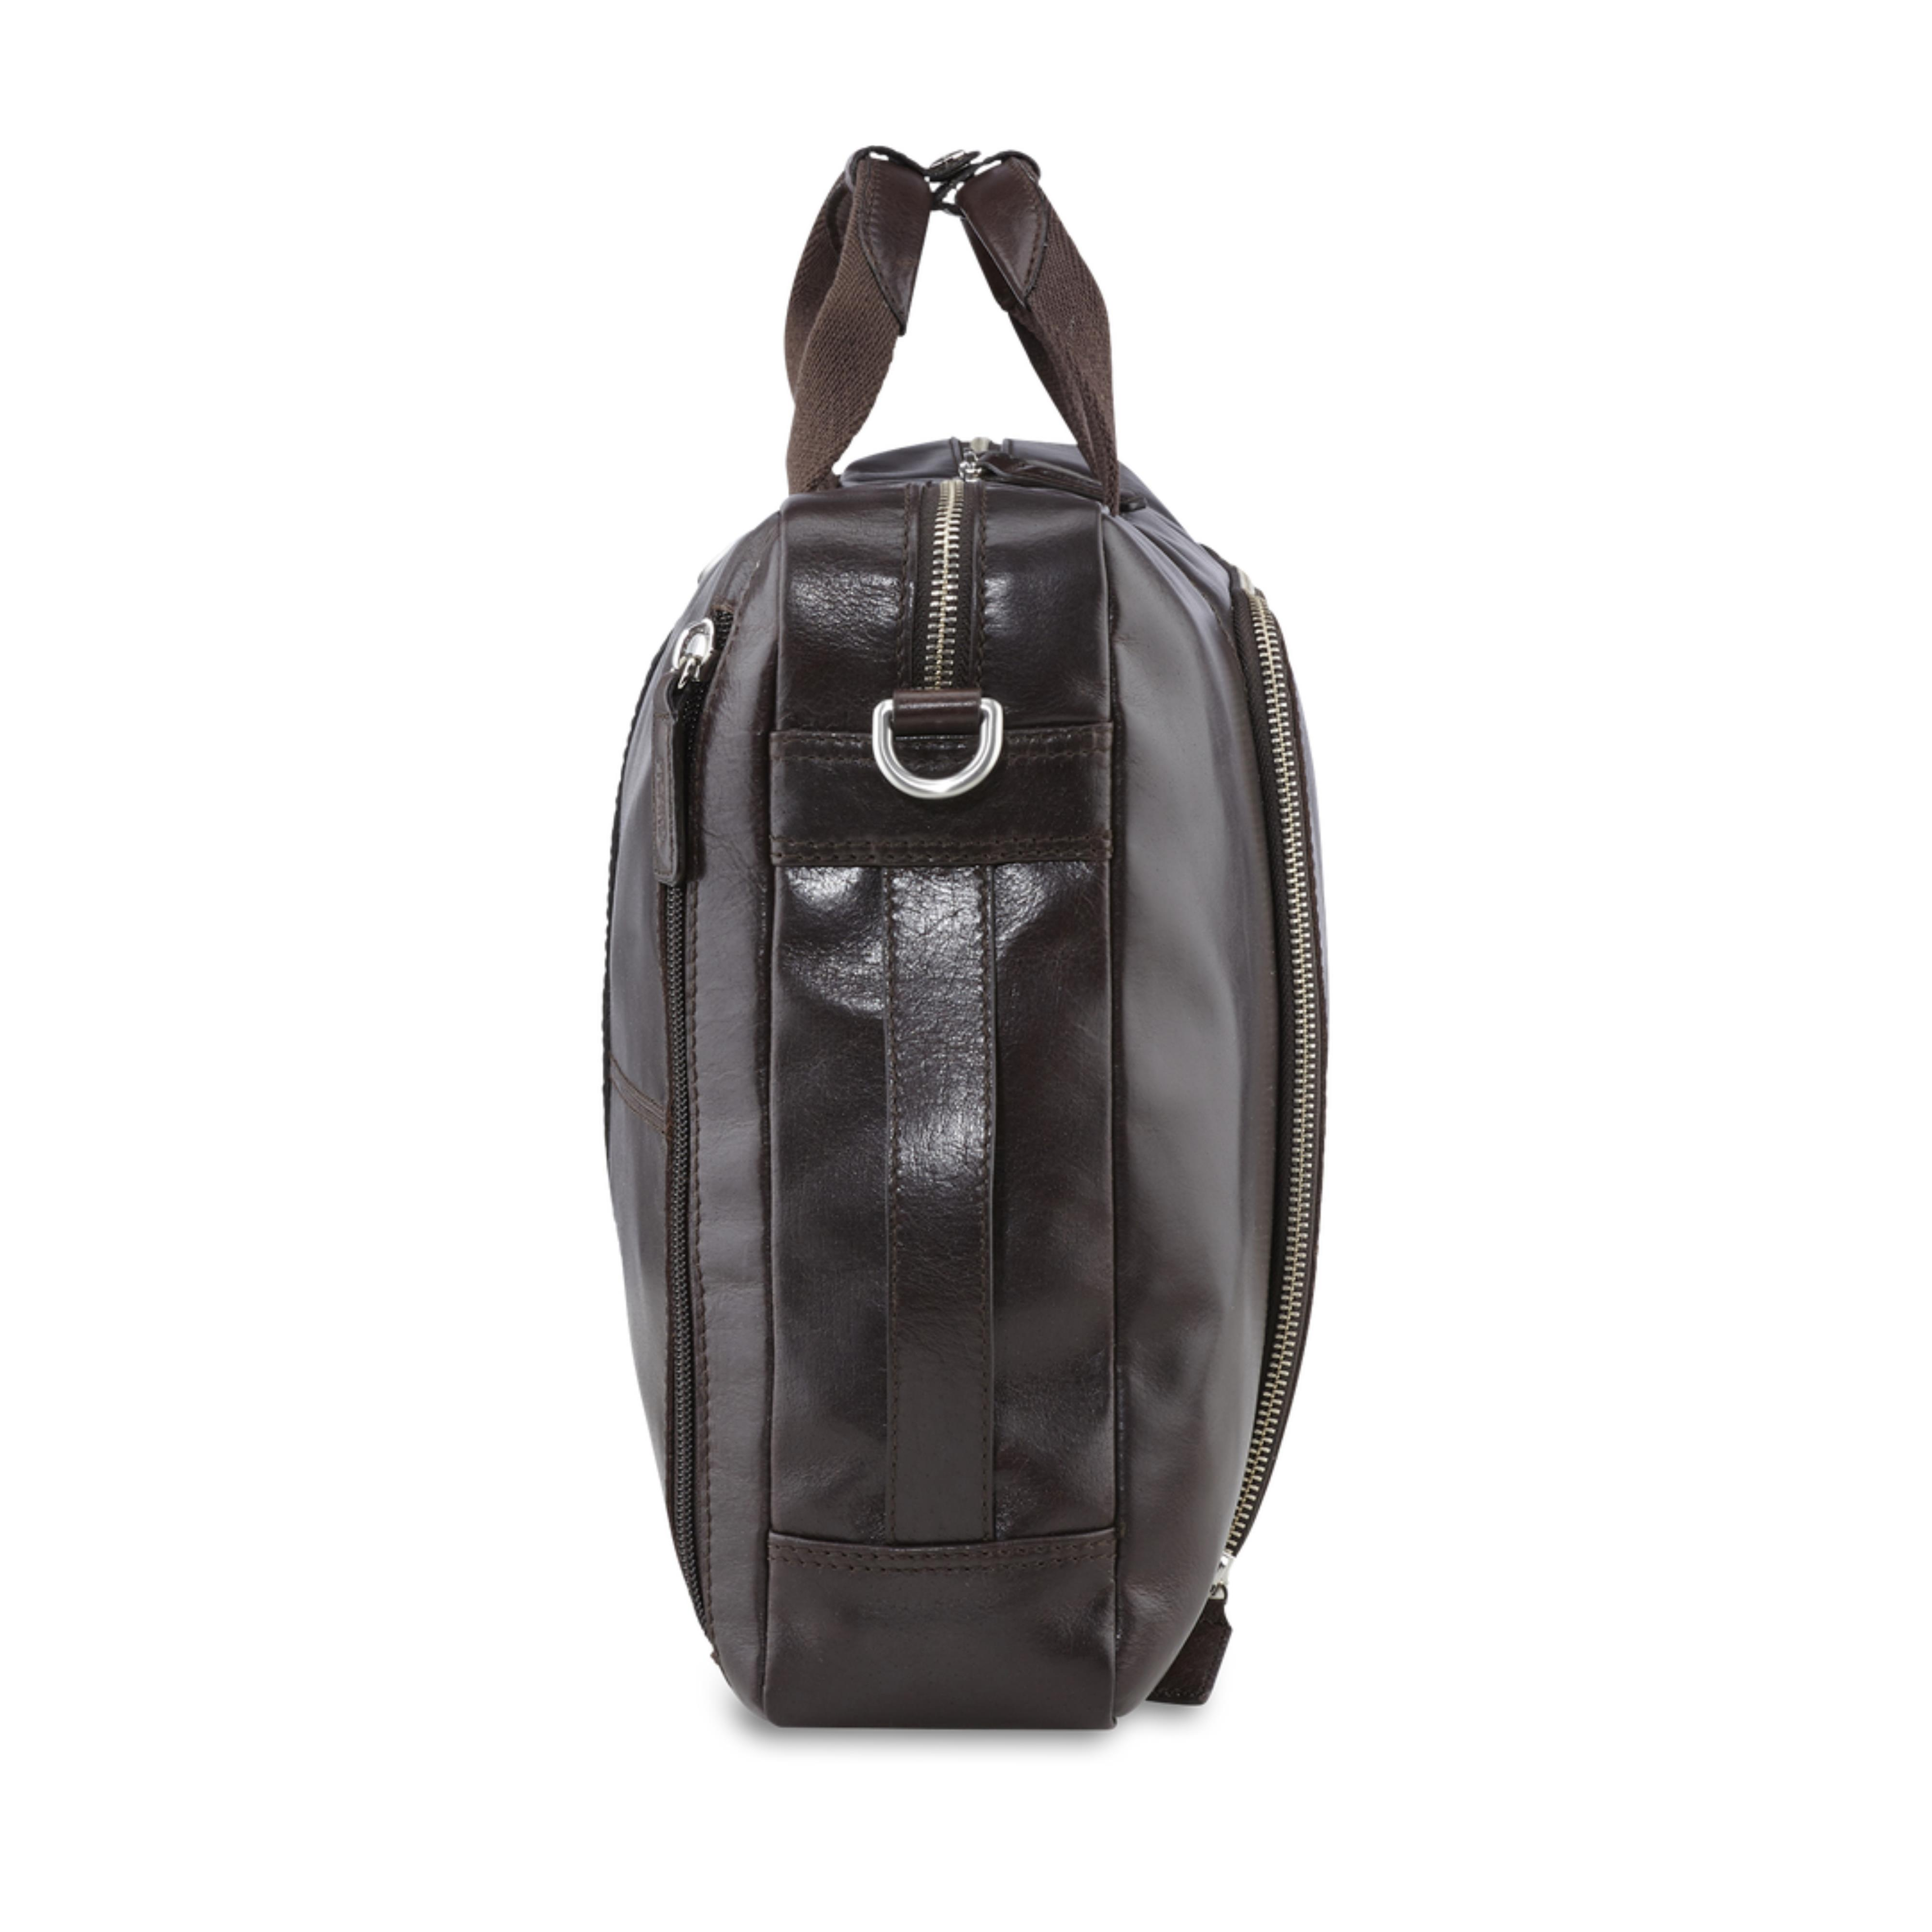 0a1e13c721600 PICARD Herren Leder Multifunktions-Businesstasche Aktentasche Tasche Buddy  Cafe 4505 004 ...